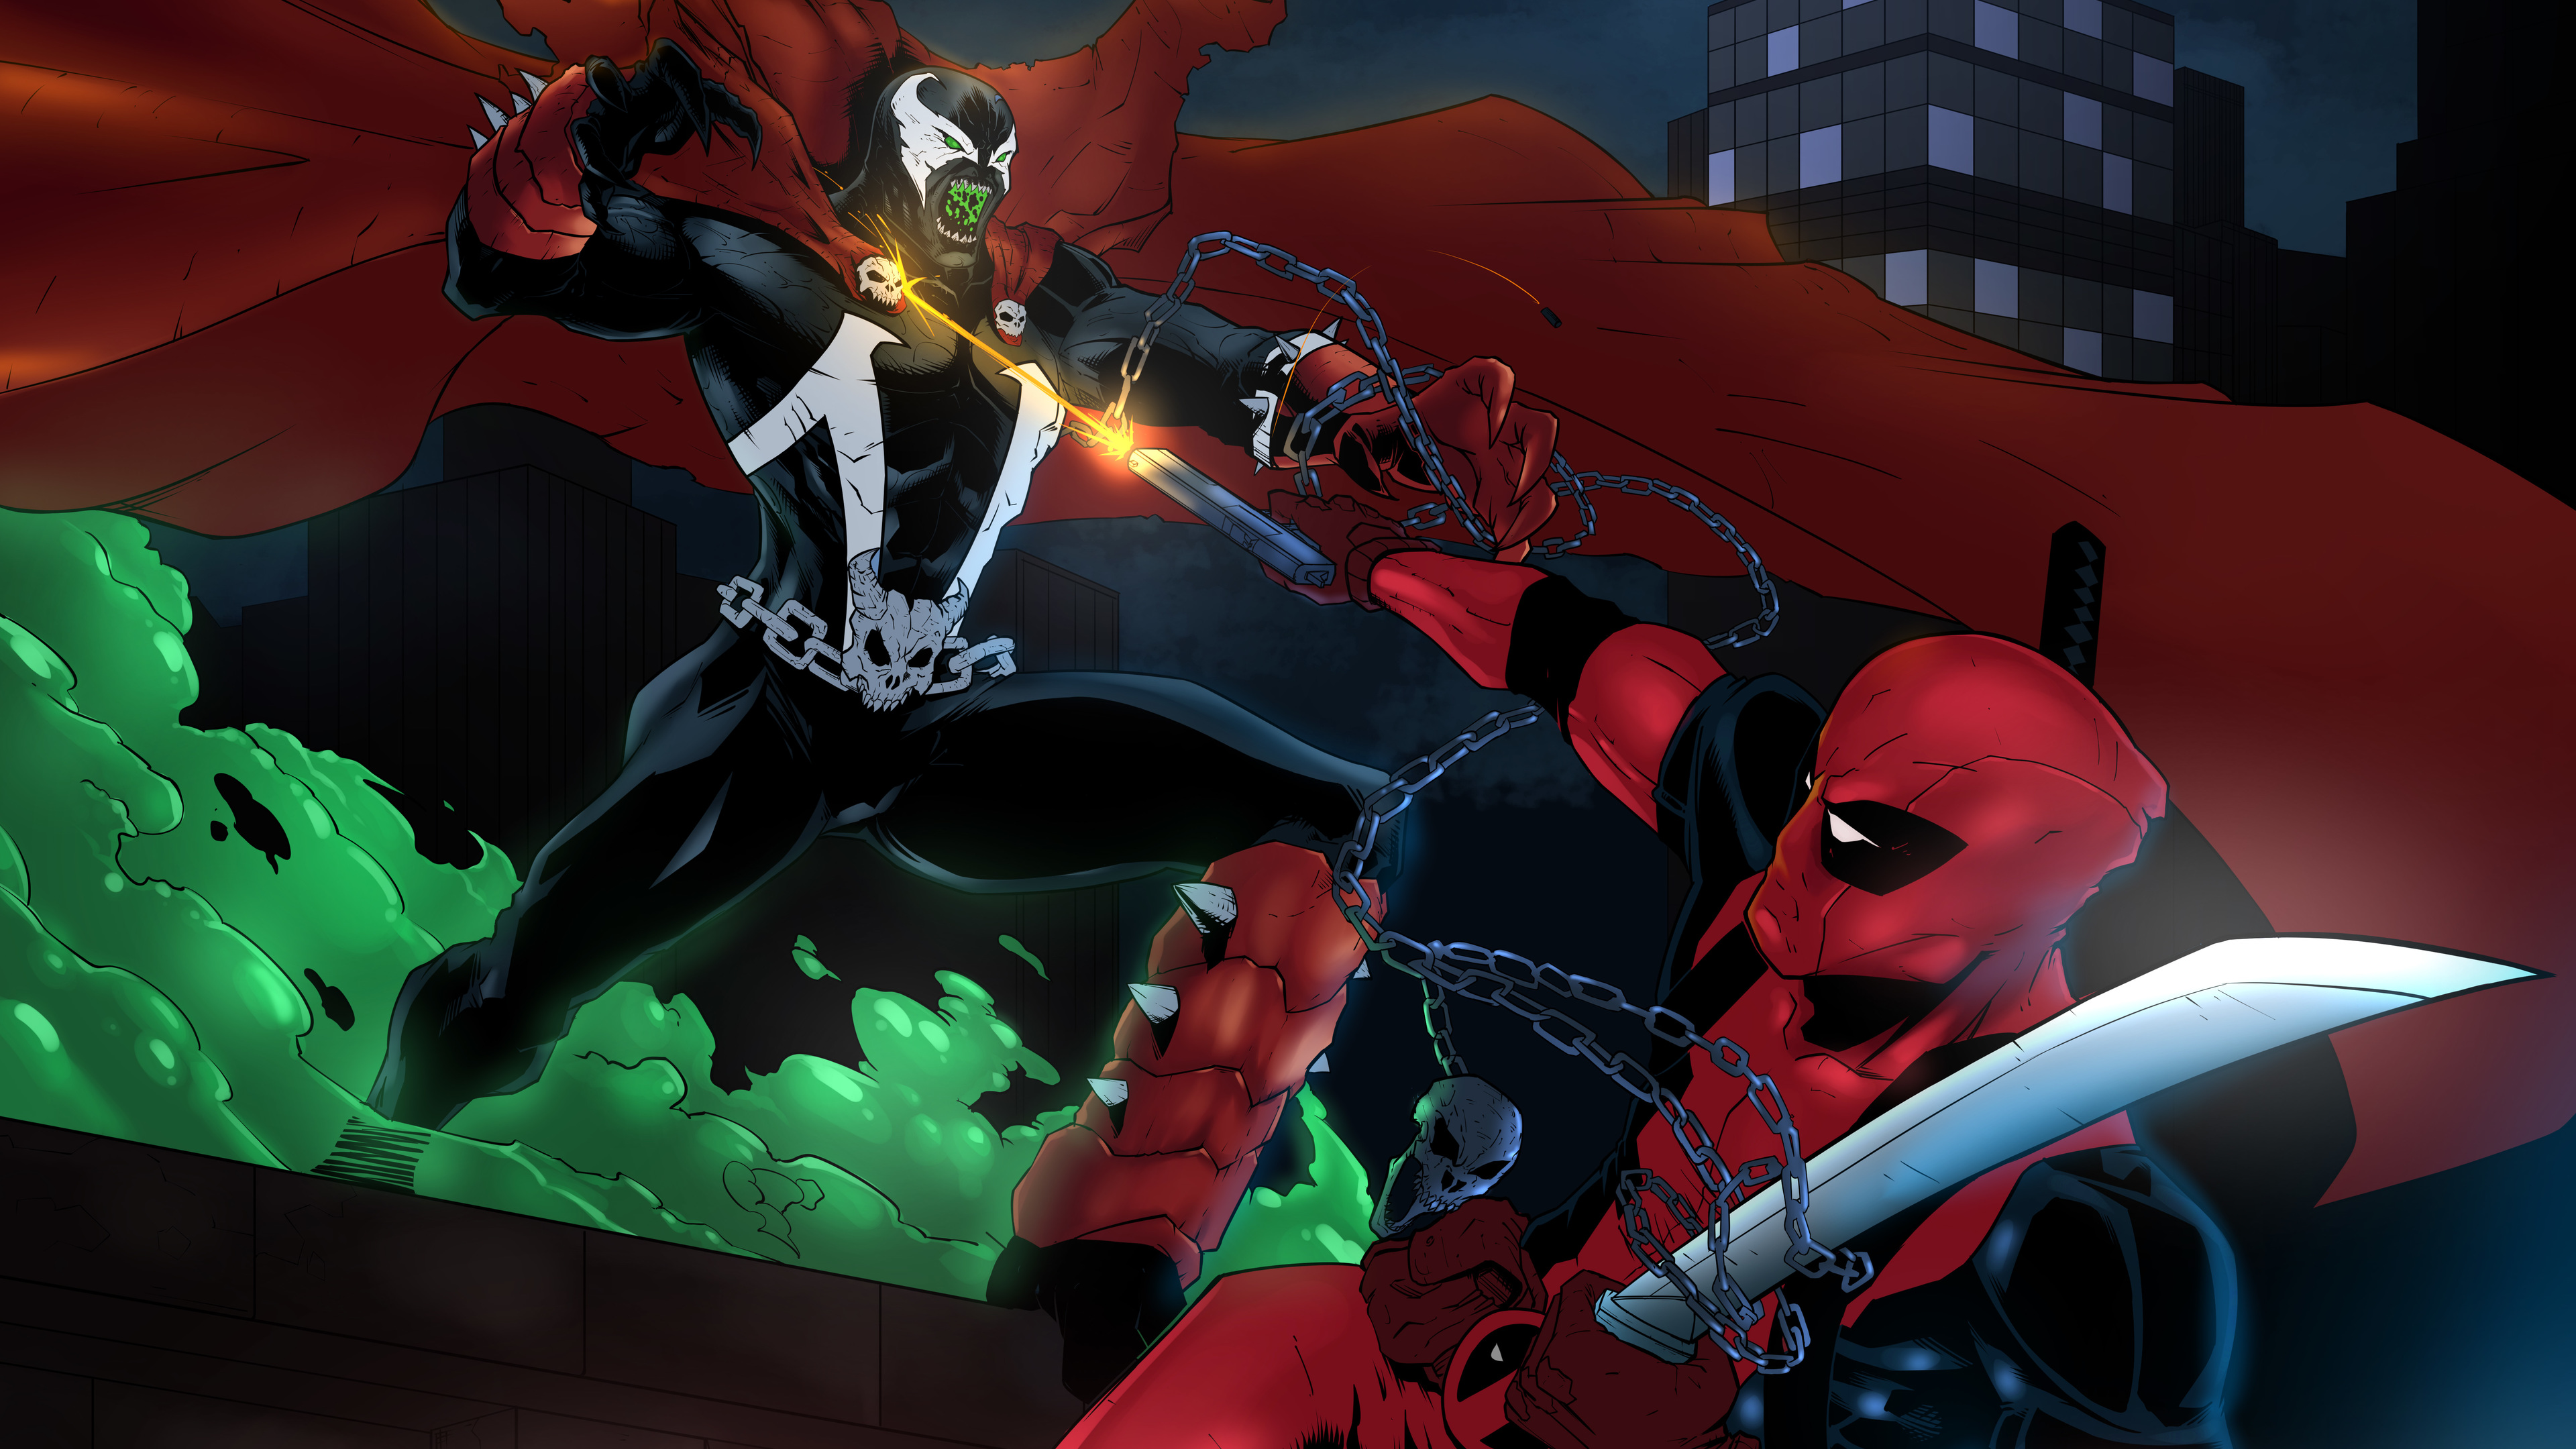 spawn vs deadpool 8k 1536524076 - Spawn Vs Deadpool 8k - superheroes wallpapers, spawn wallpapers, hd-wallpapers, digital art wallpapers, deviantart wallpapers, deadpool wallpapers, artwork wallpapers, 8k wallpapers, 5k wallpapers, 4k-wallpapers